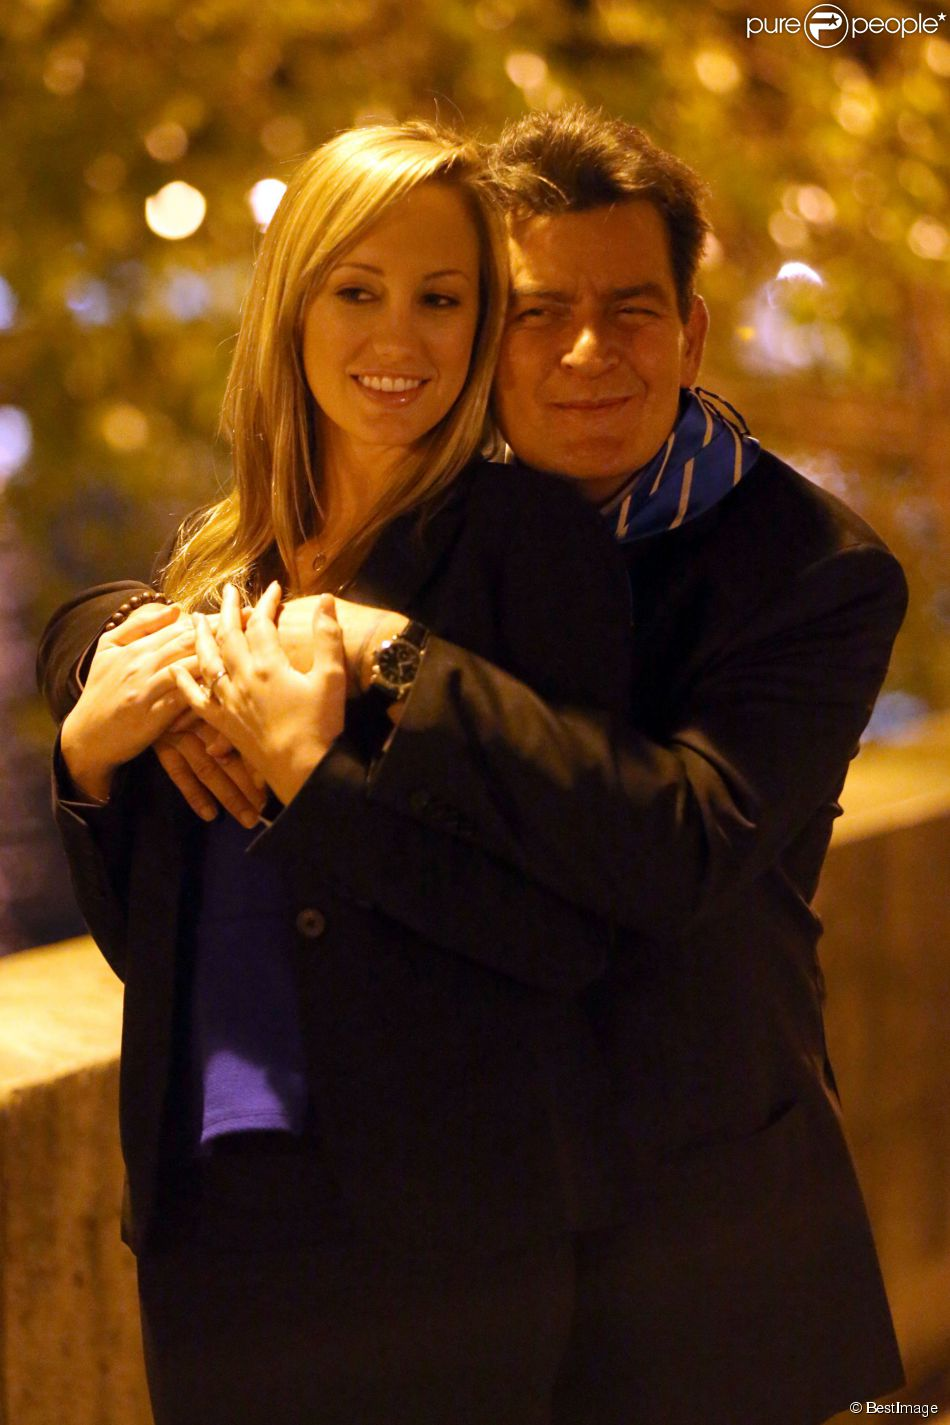 Exclusif - Charlie Sheen et Scottine Ross (Brett Rossi) sur l'île Saint-Louis à Paris, le 16 avril 2014